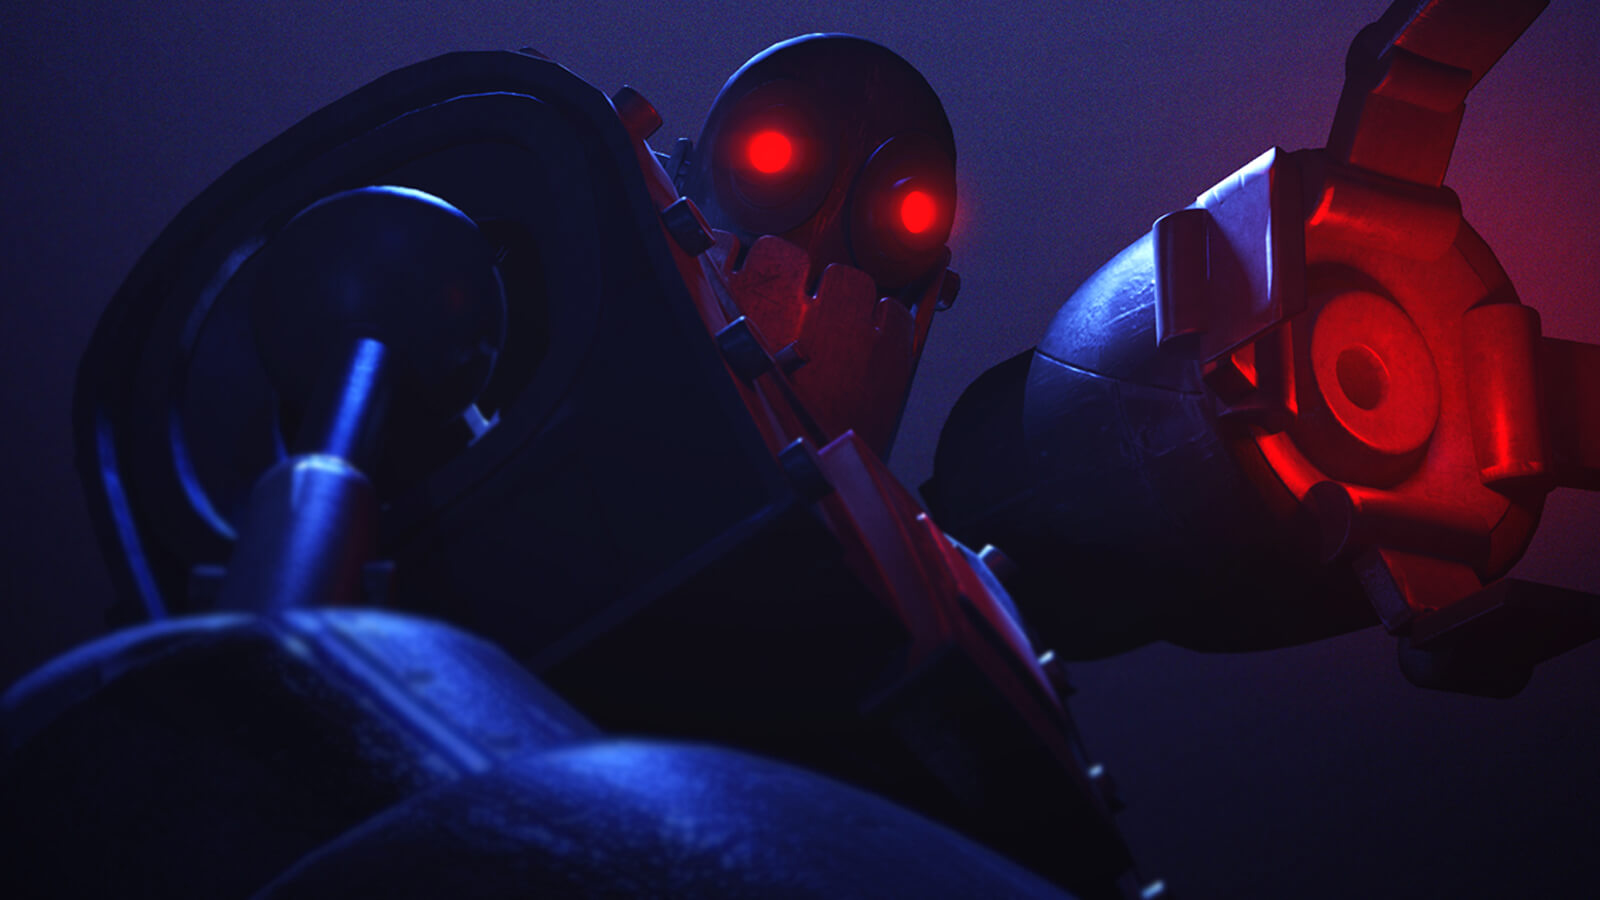 A dimly lit, metal robot raises an open claw as seen from below. Both its claw and eyes glow brightly red in the dark.